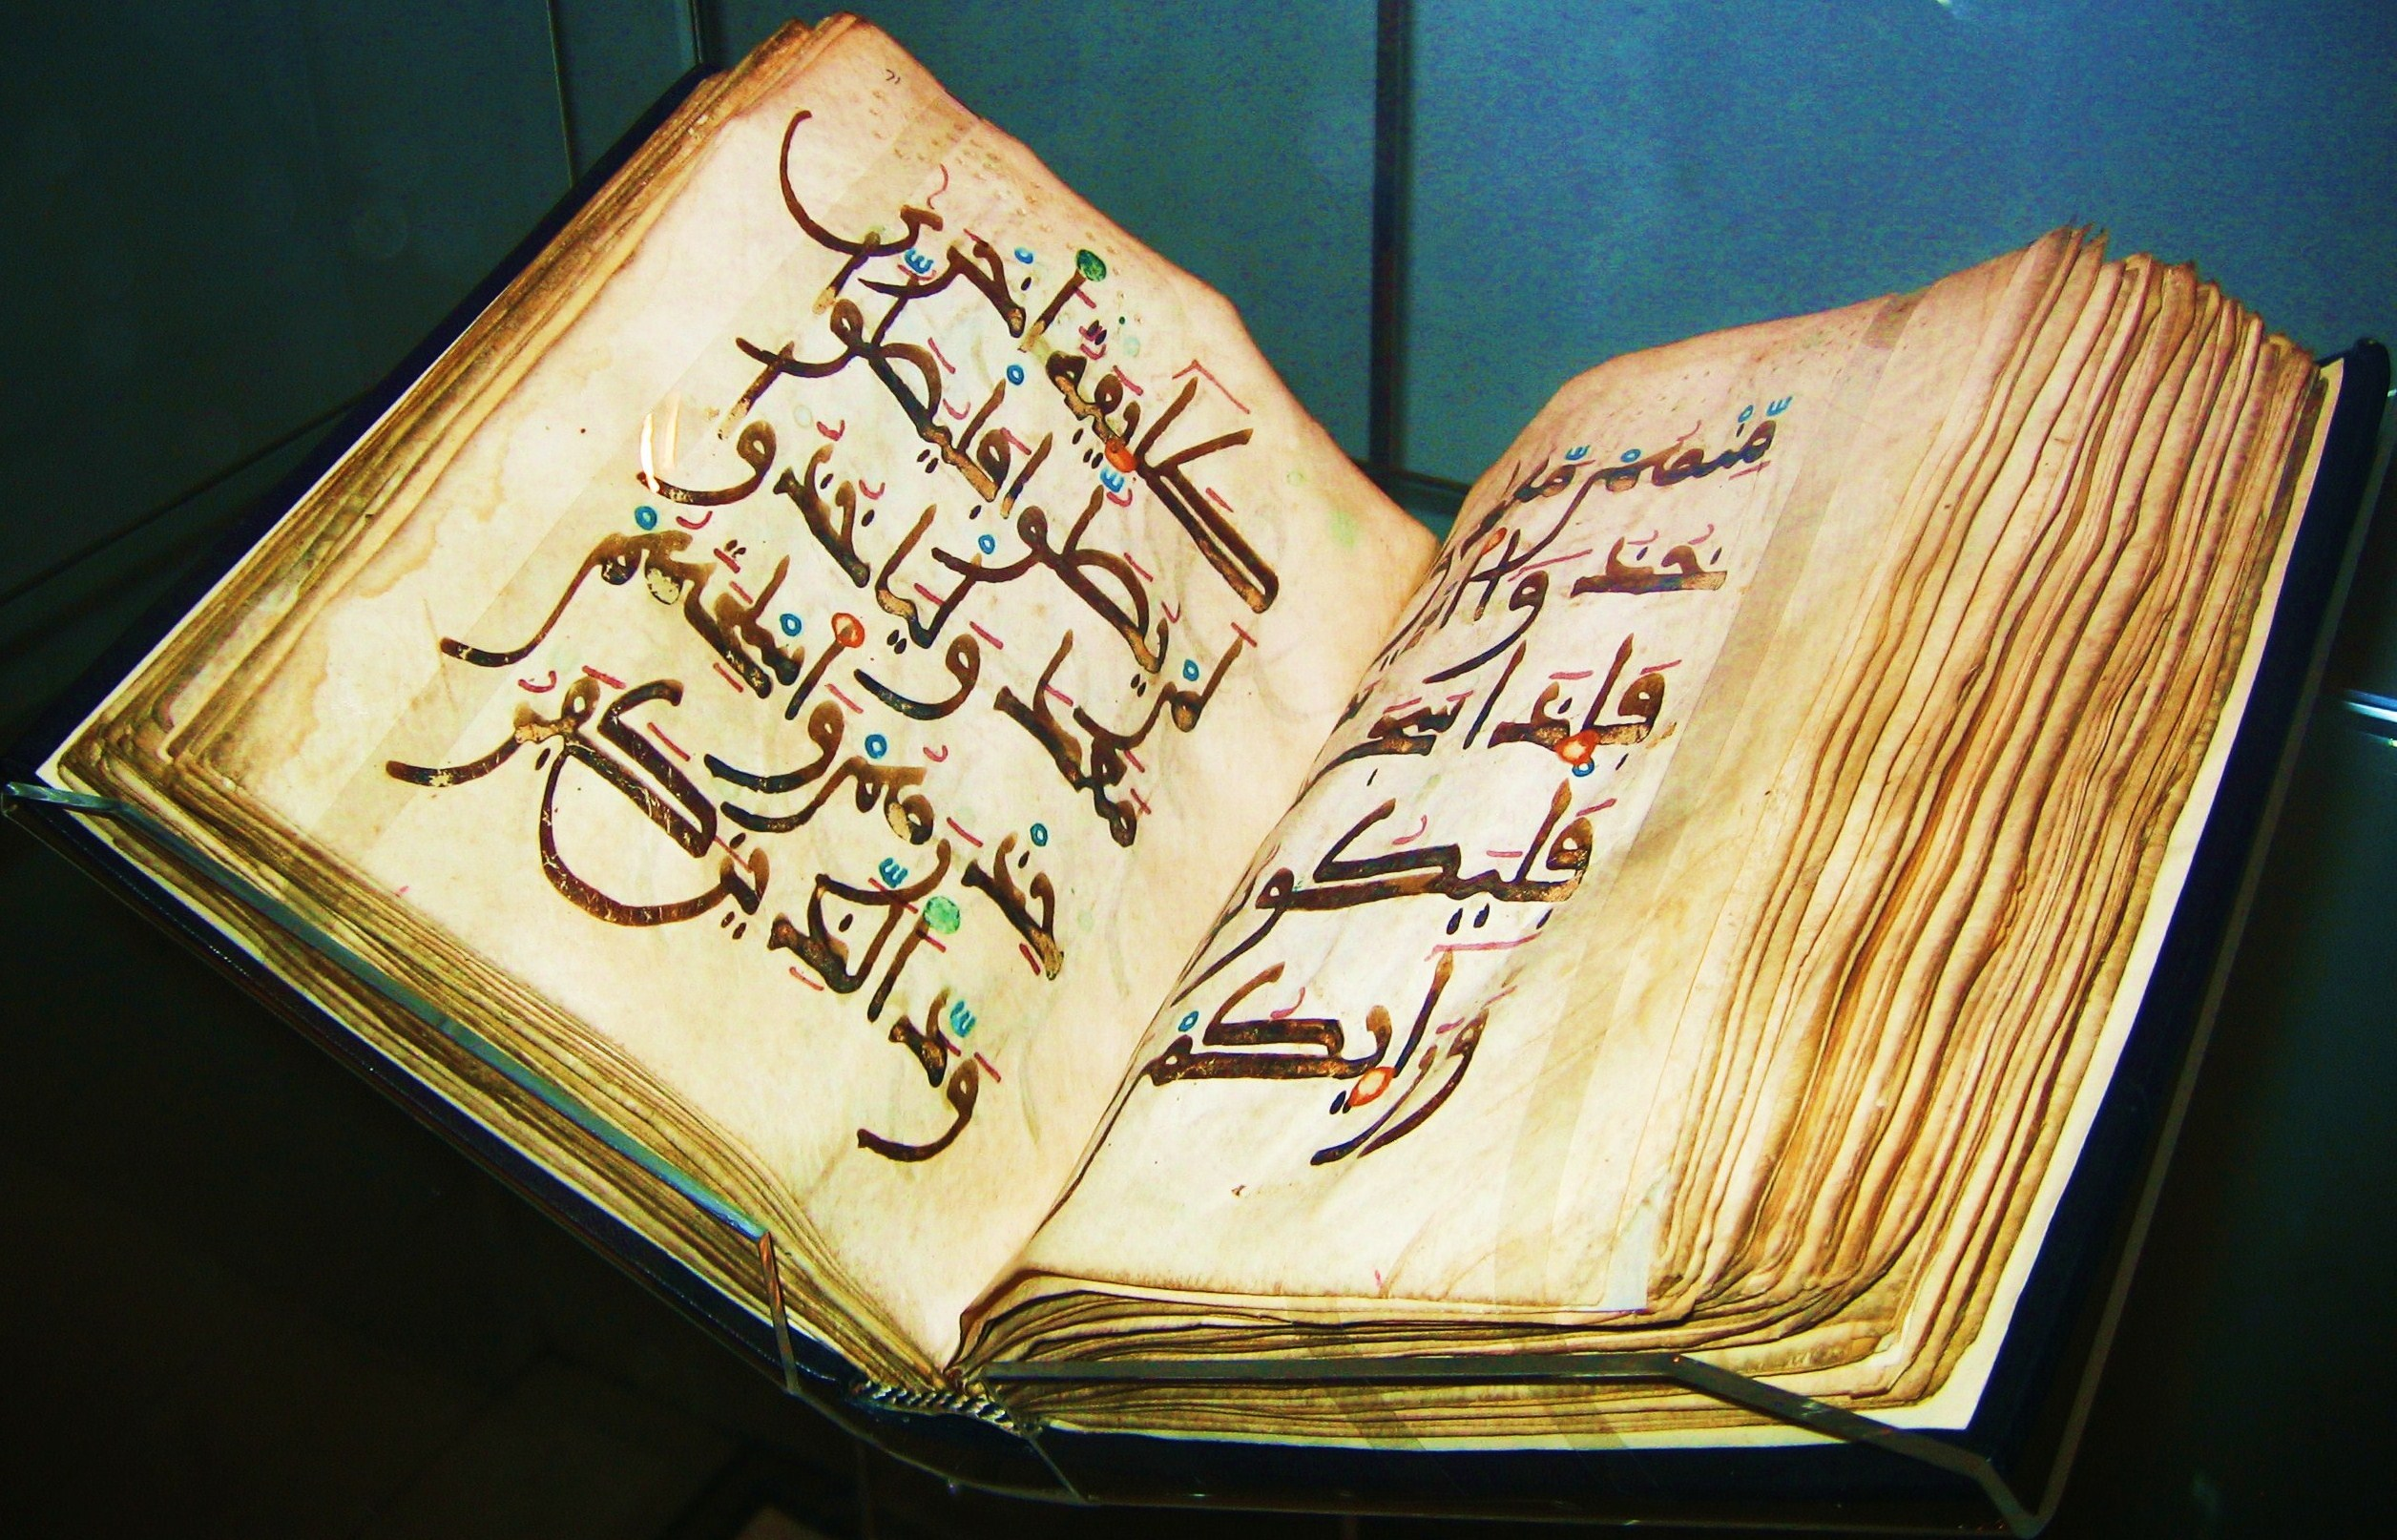 http://upload.wikimedia.org/wikipedia/commons/5/50/BM_Quran.JPG